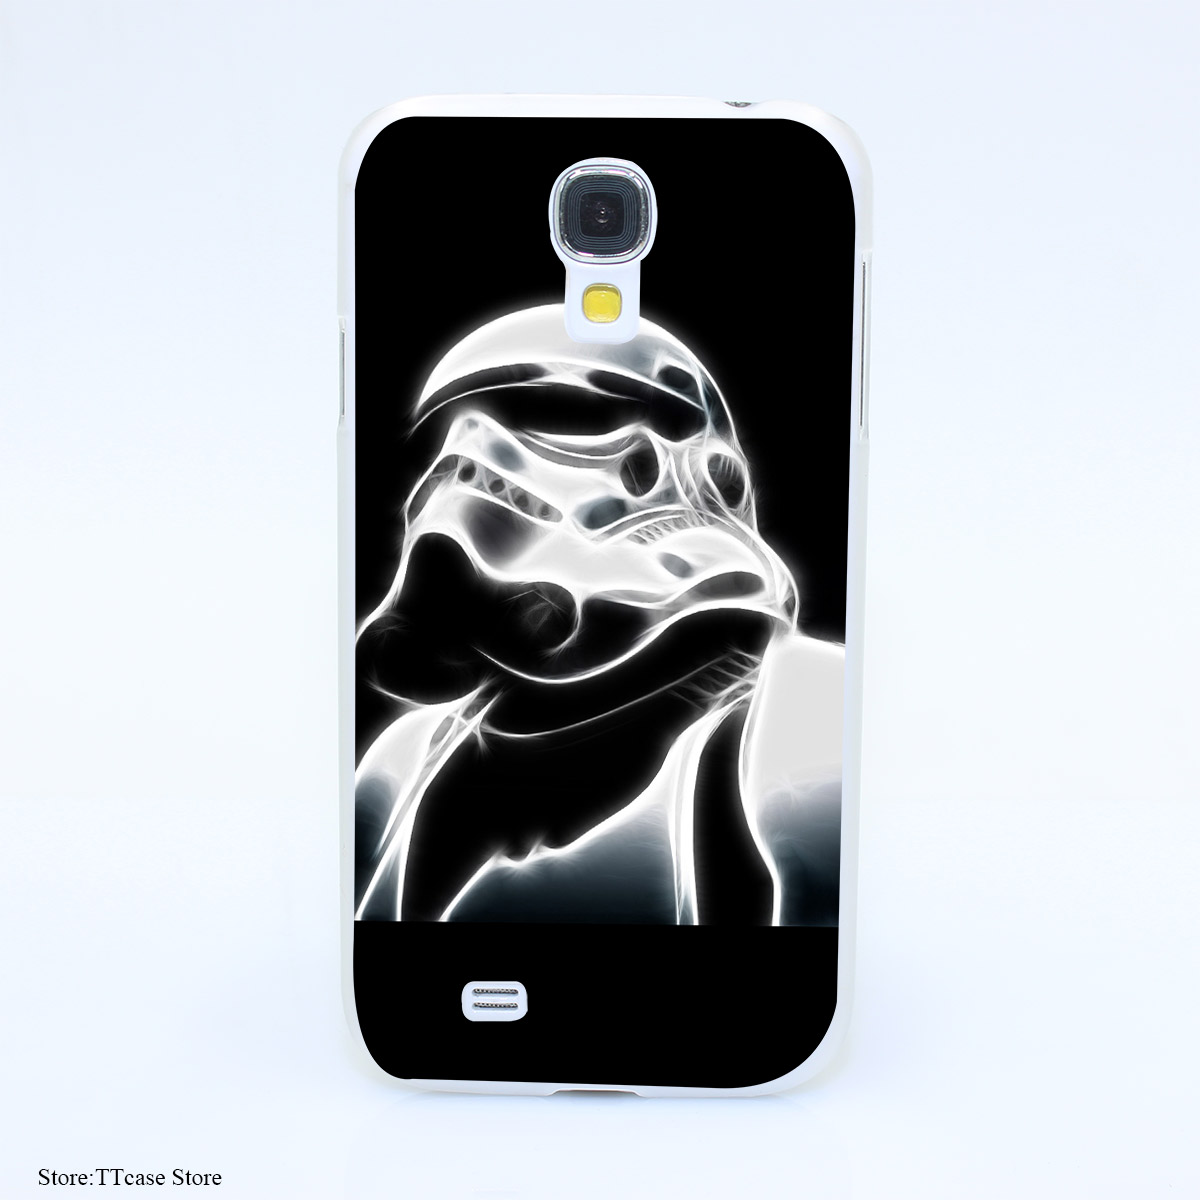 3954CA Vintage Stormtrooper Star Wars Hard Transparent Case Cover for Galaxy S2 S3 S4 S5 & Mini S6 S7 & edge Plus